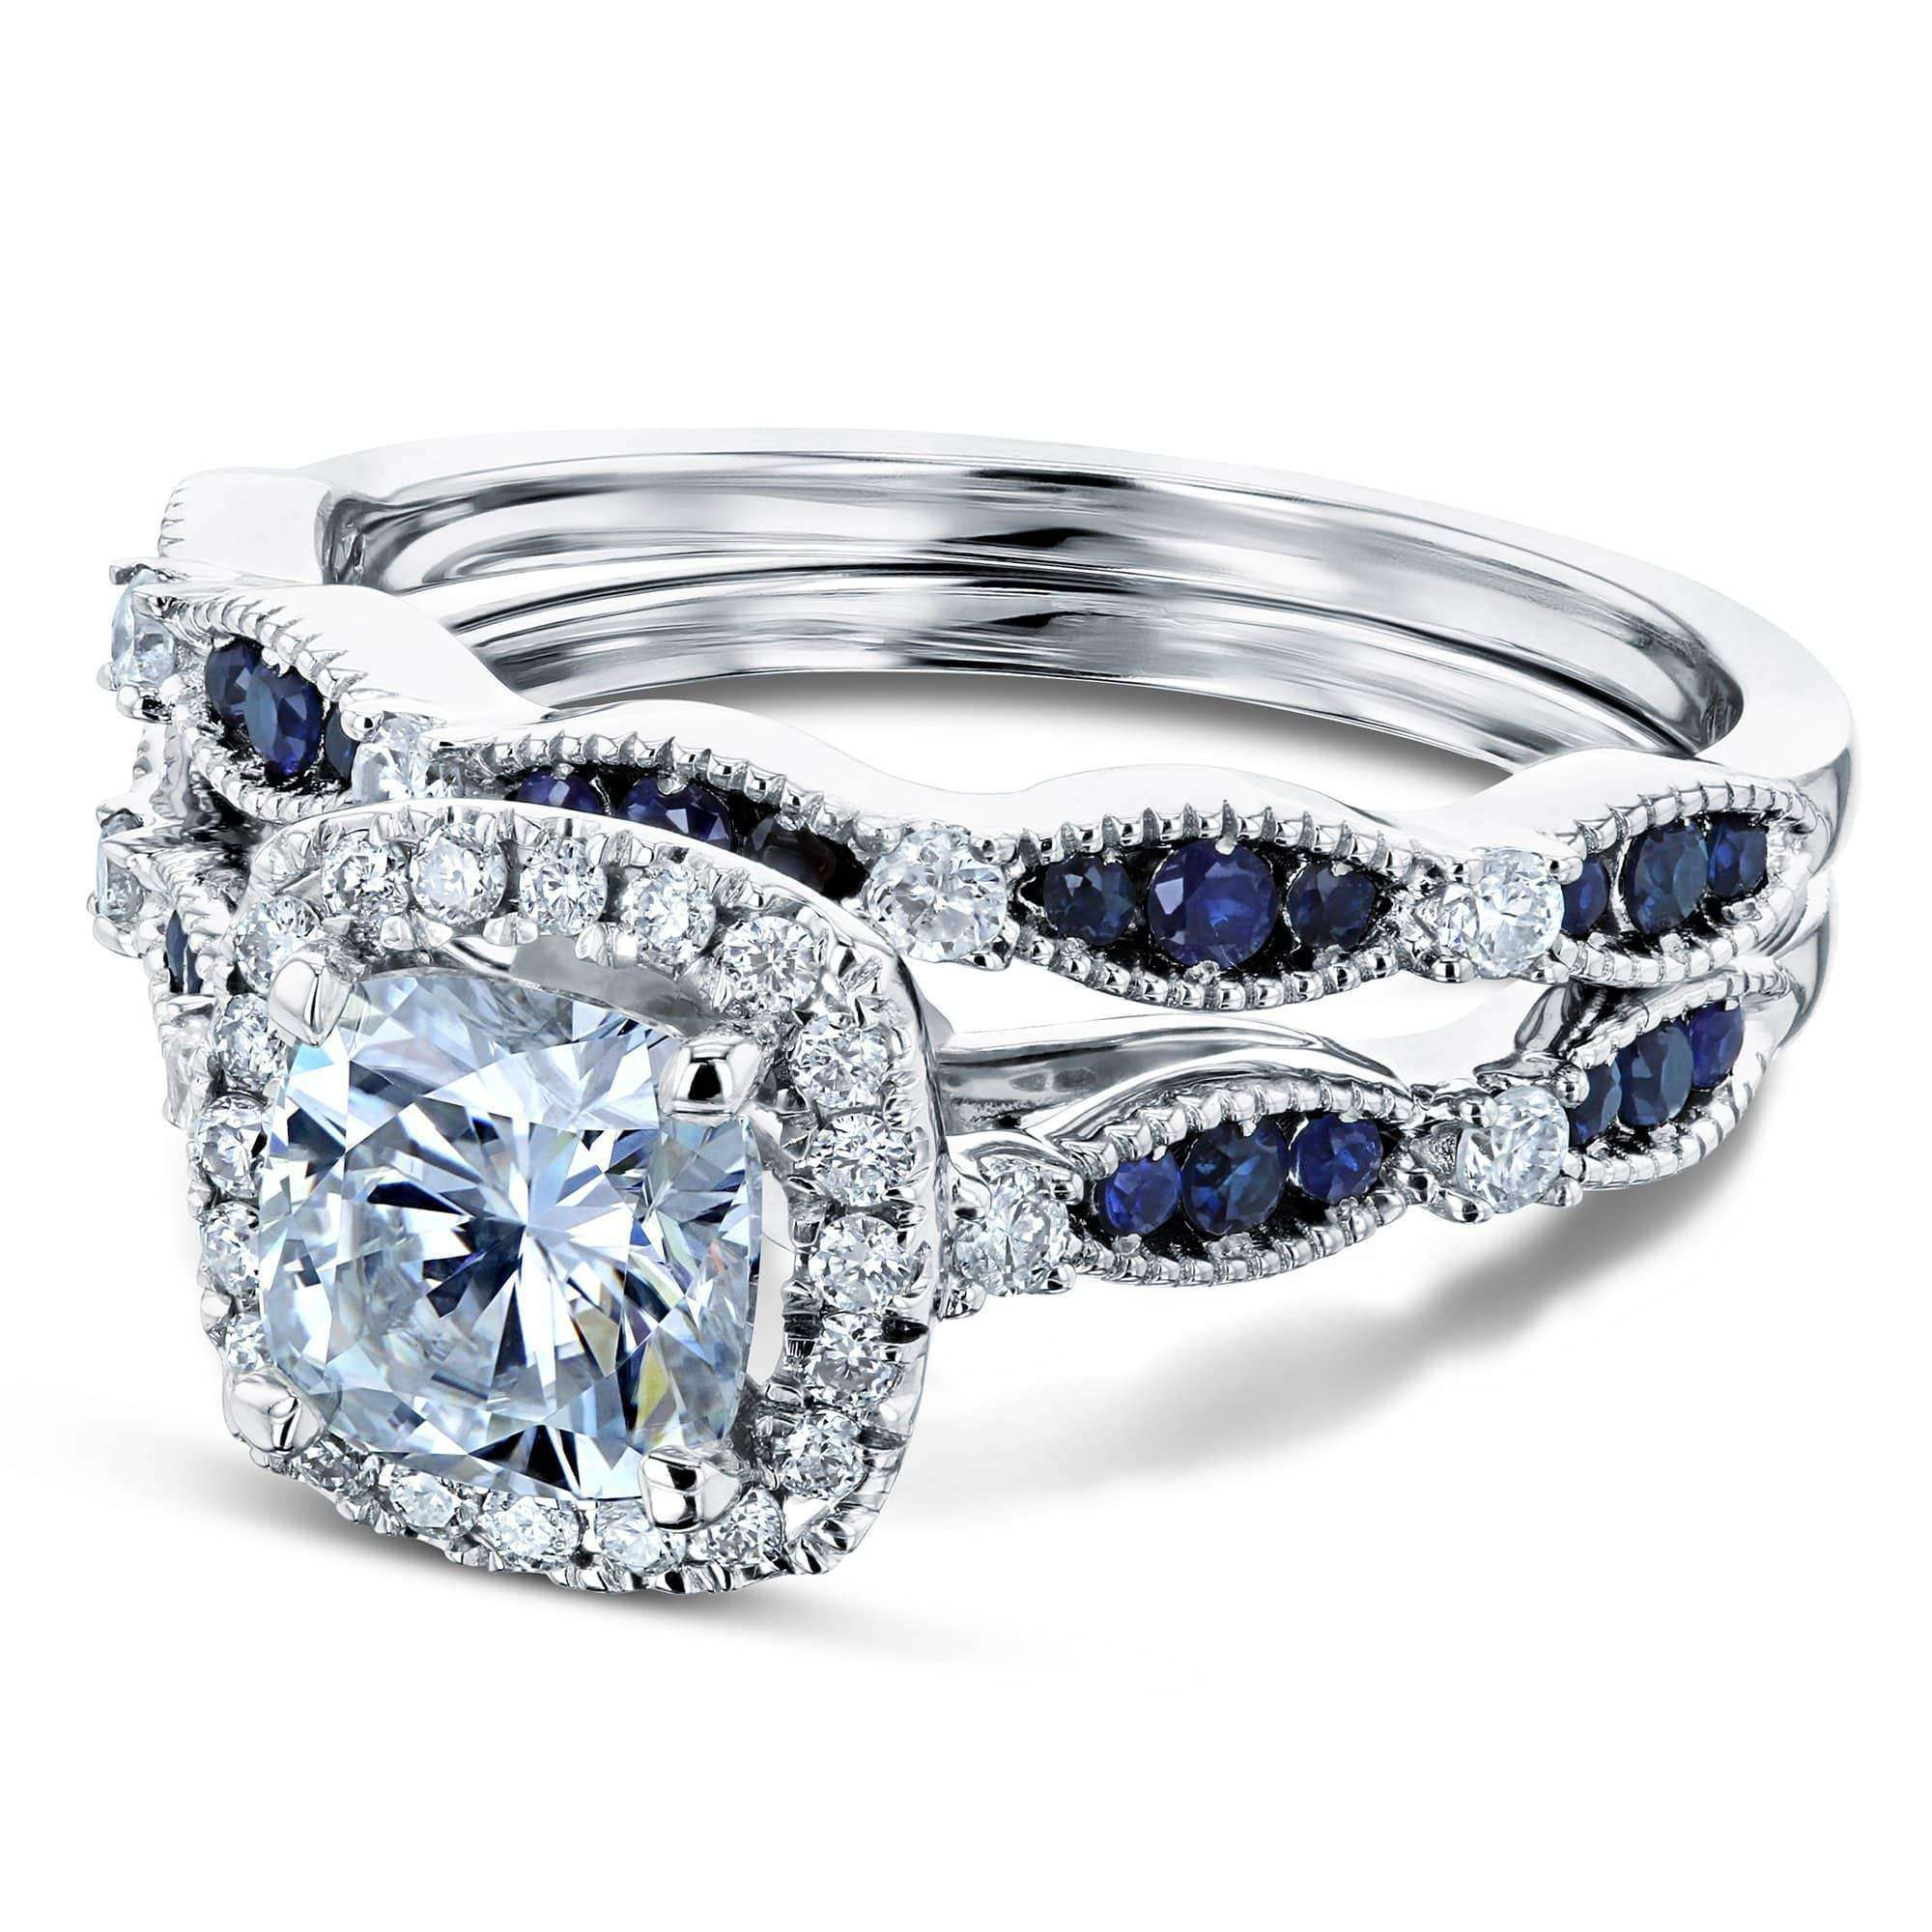 Promos Moissanite and Blue Sapphire Halo Bridal Rings Set - 8.5 Kobelli F-G